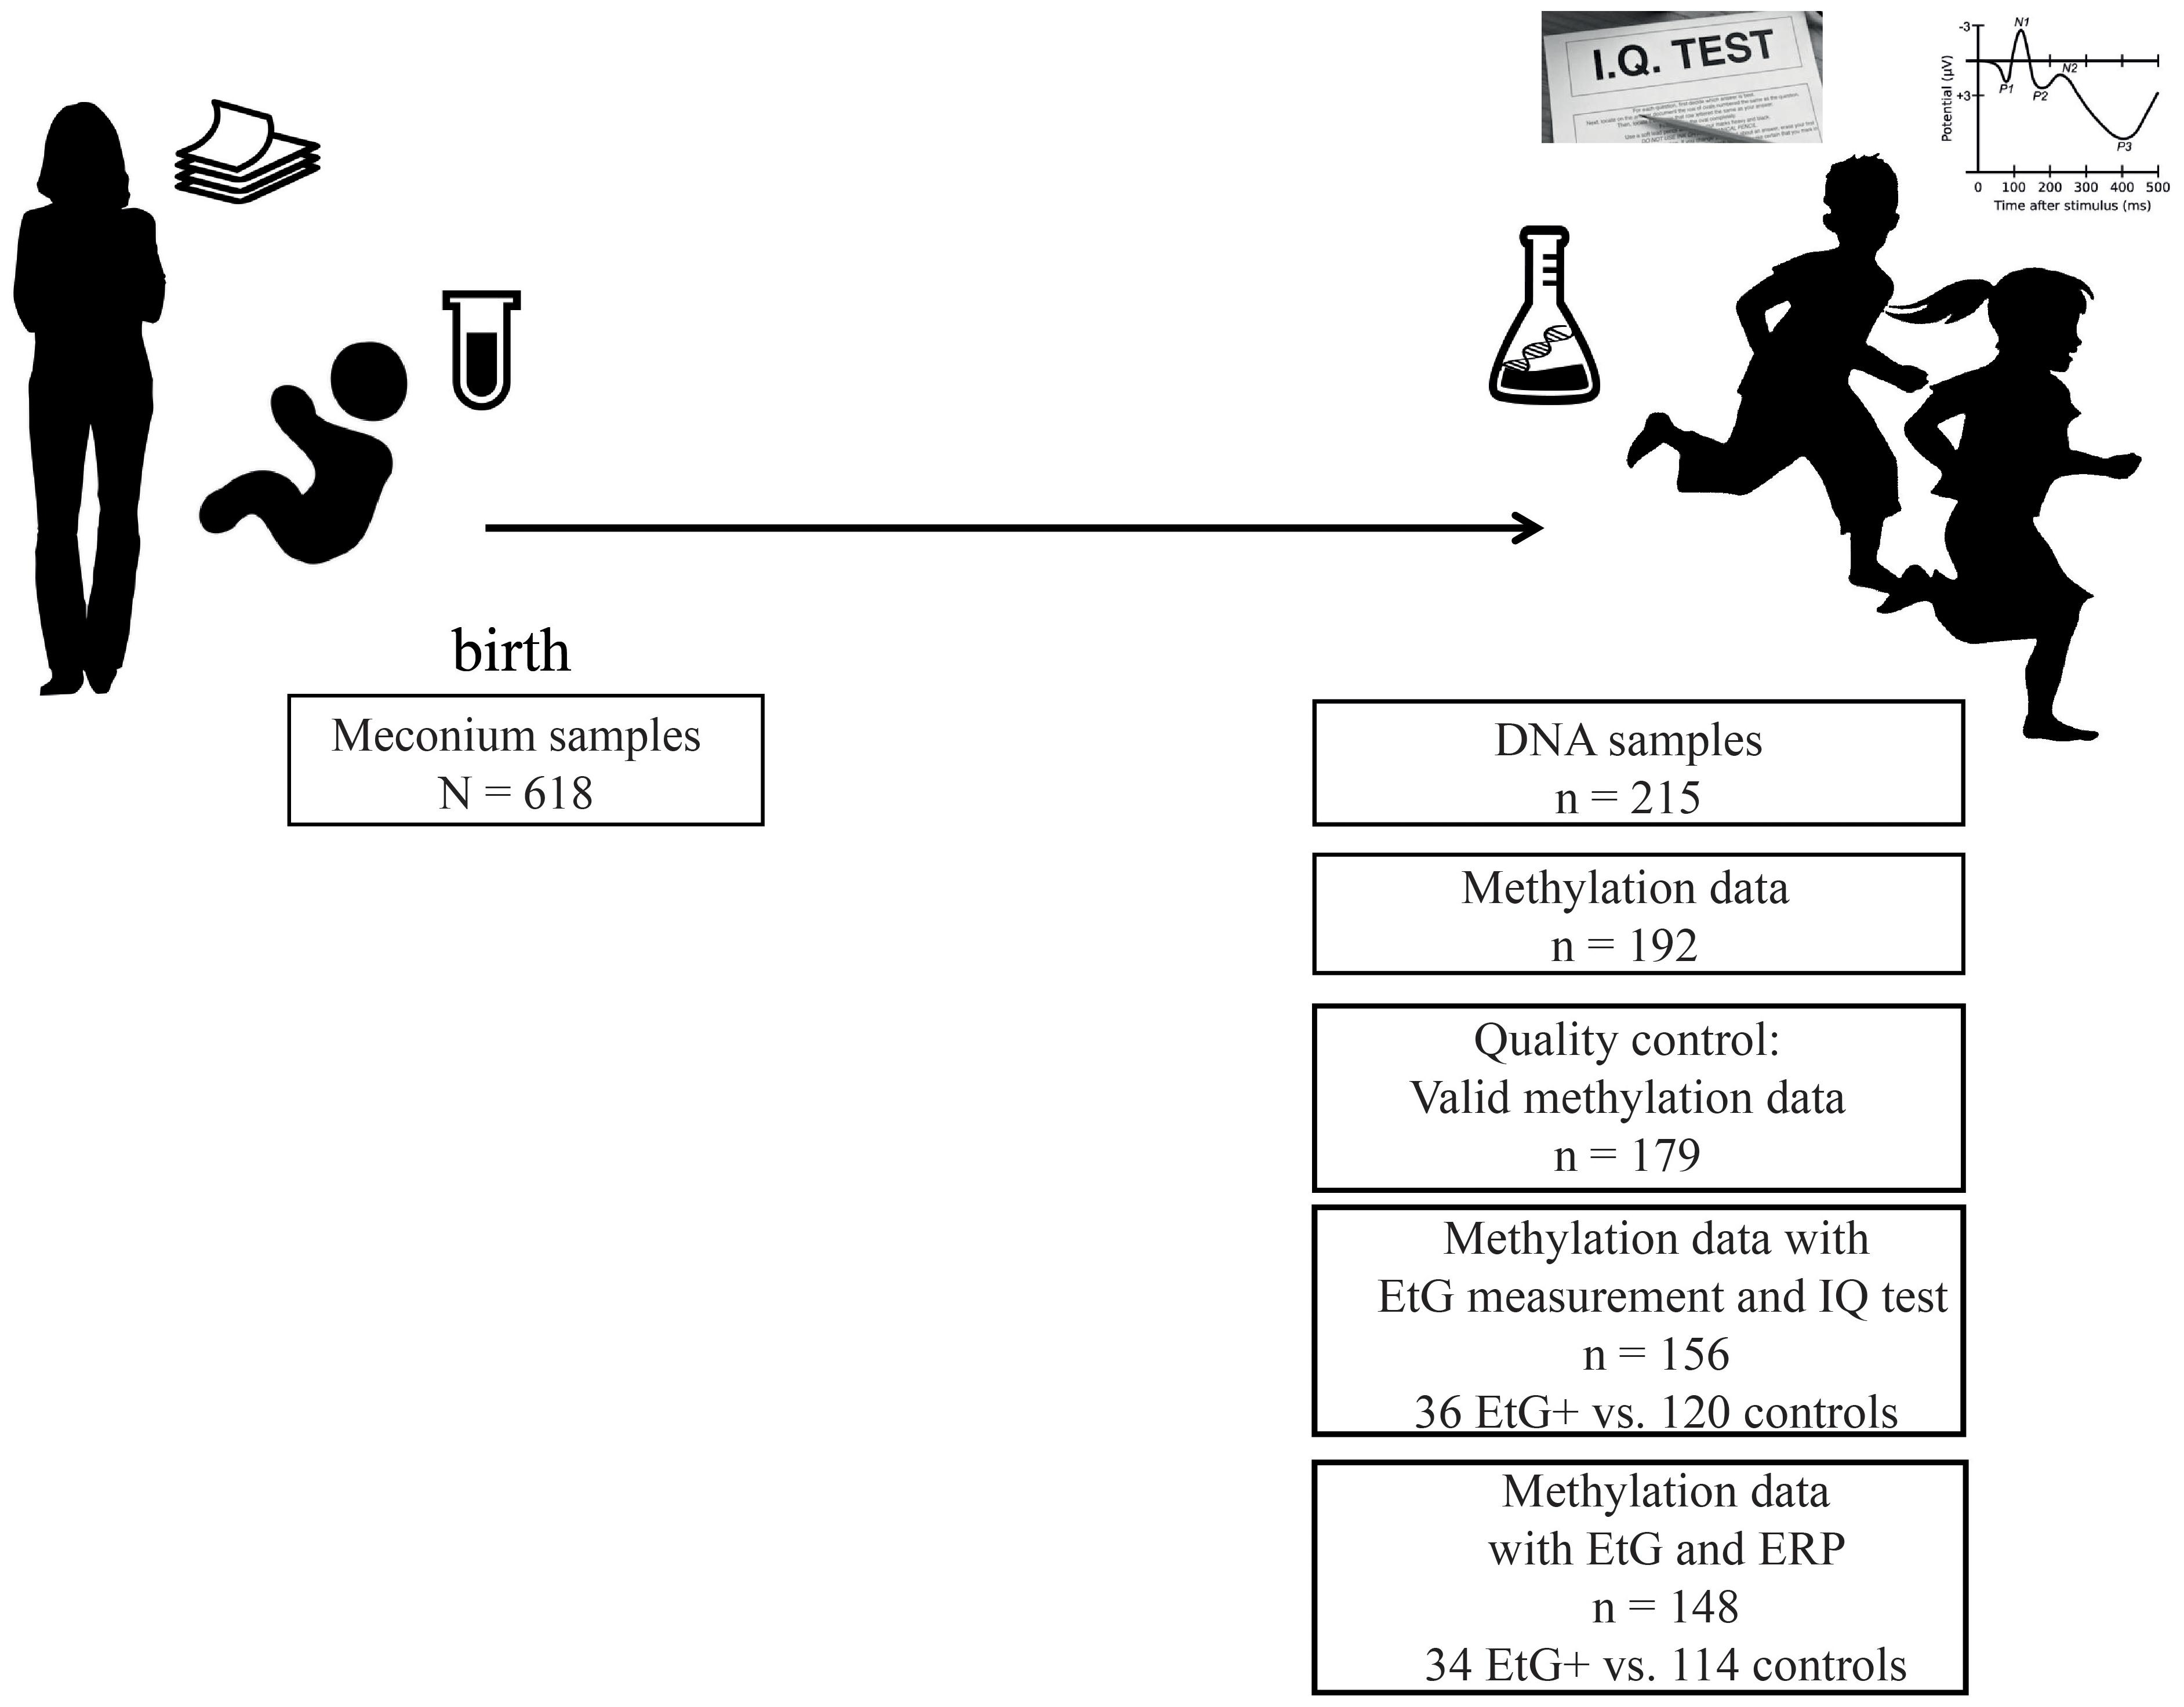 Frontiers Prenatal Alcohol Exposure Is Associated With Adverse Oliver 88 Wiring Diagram